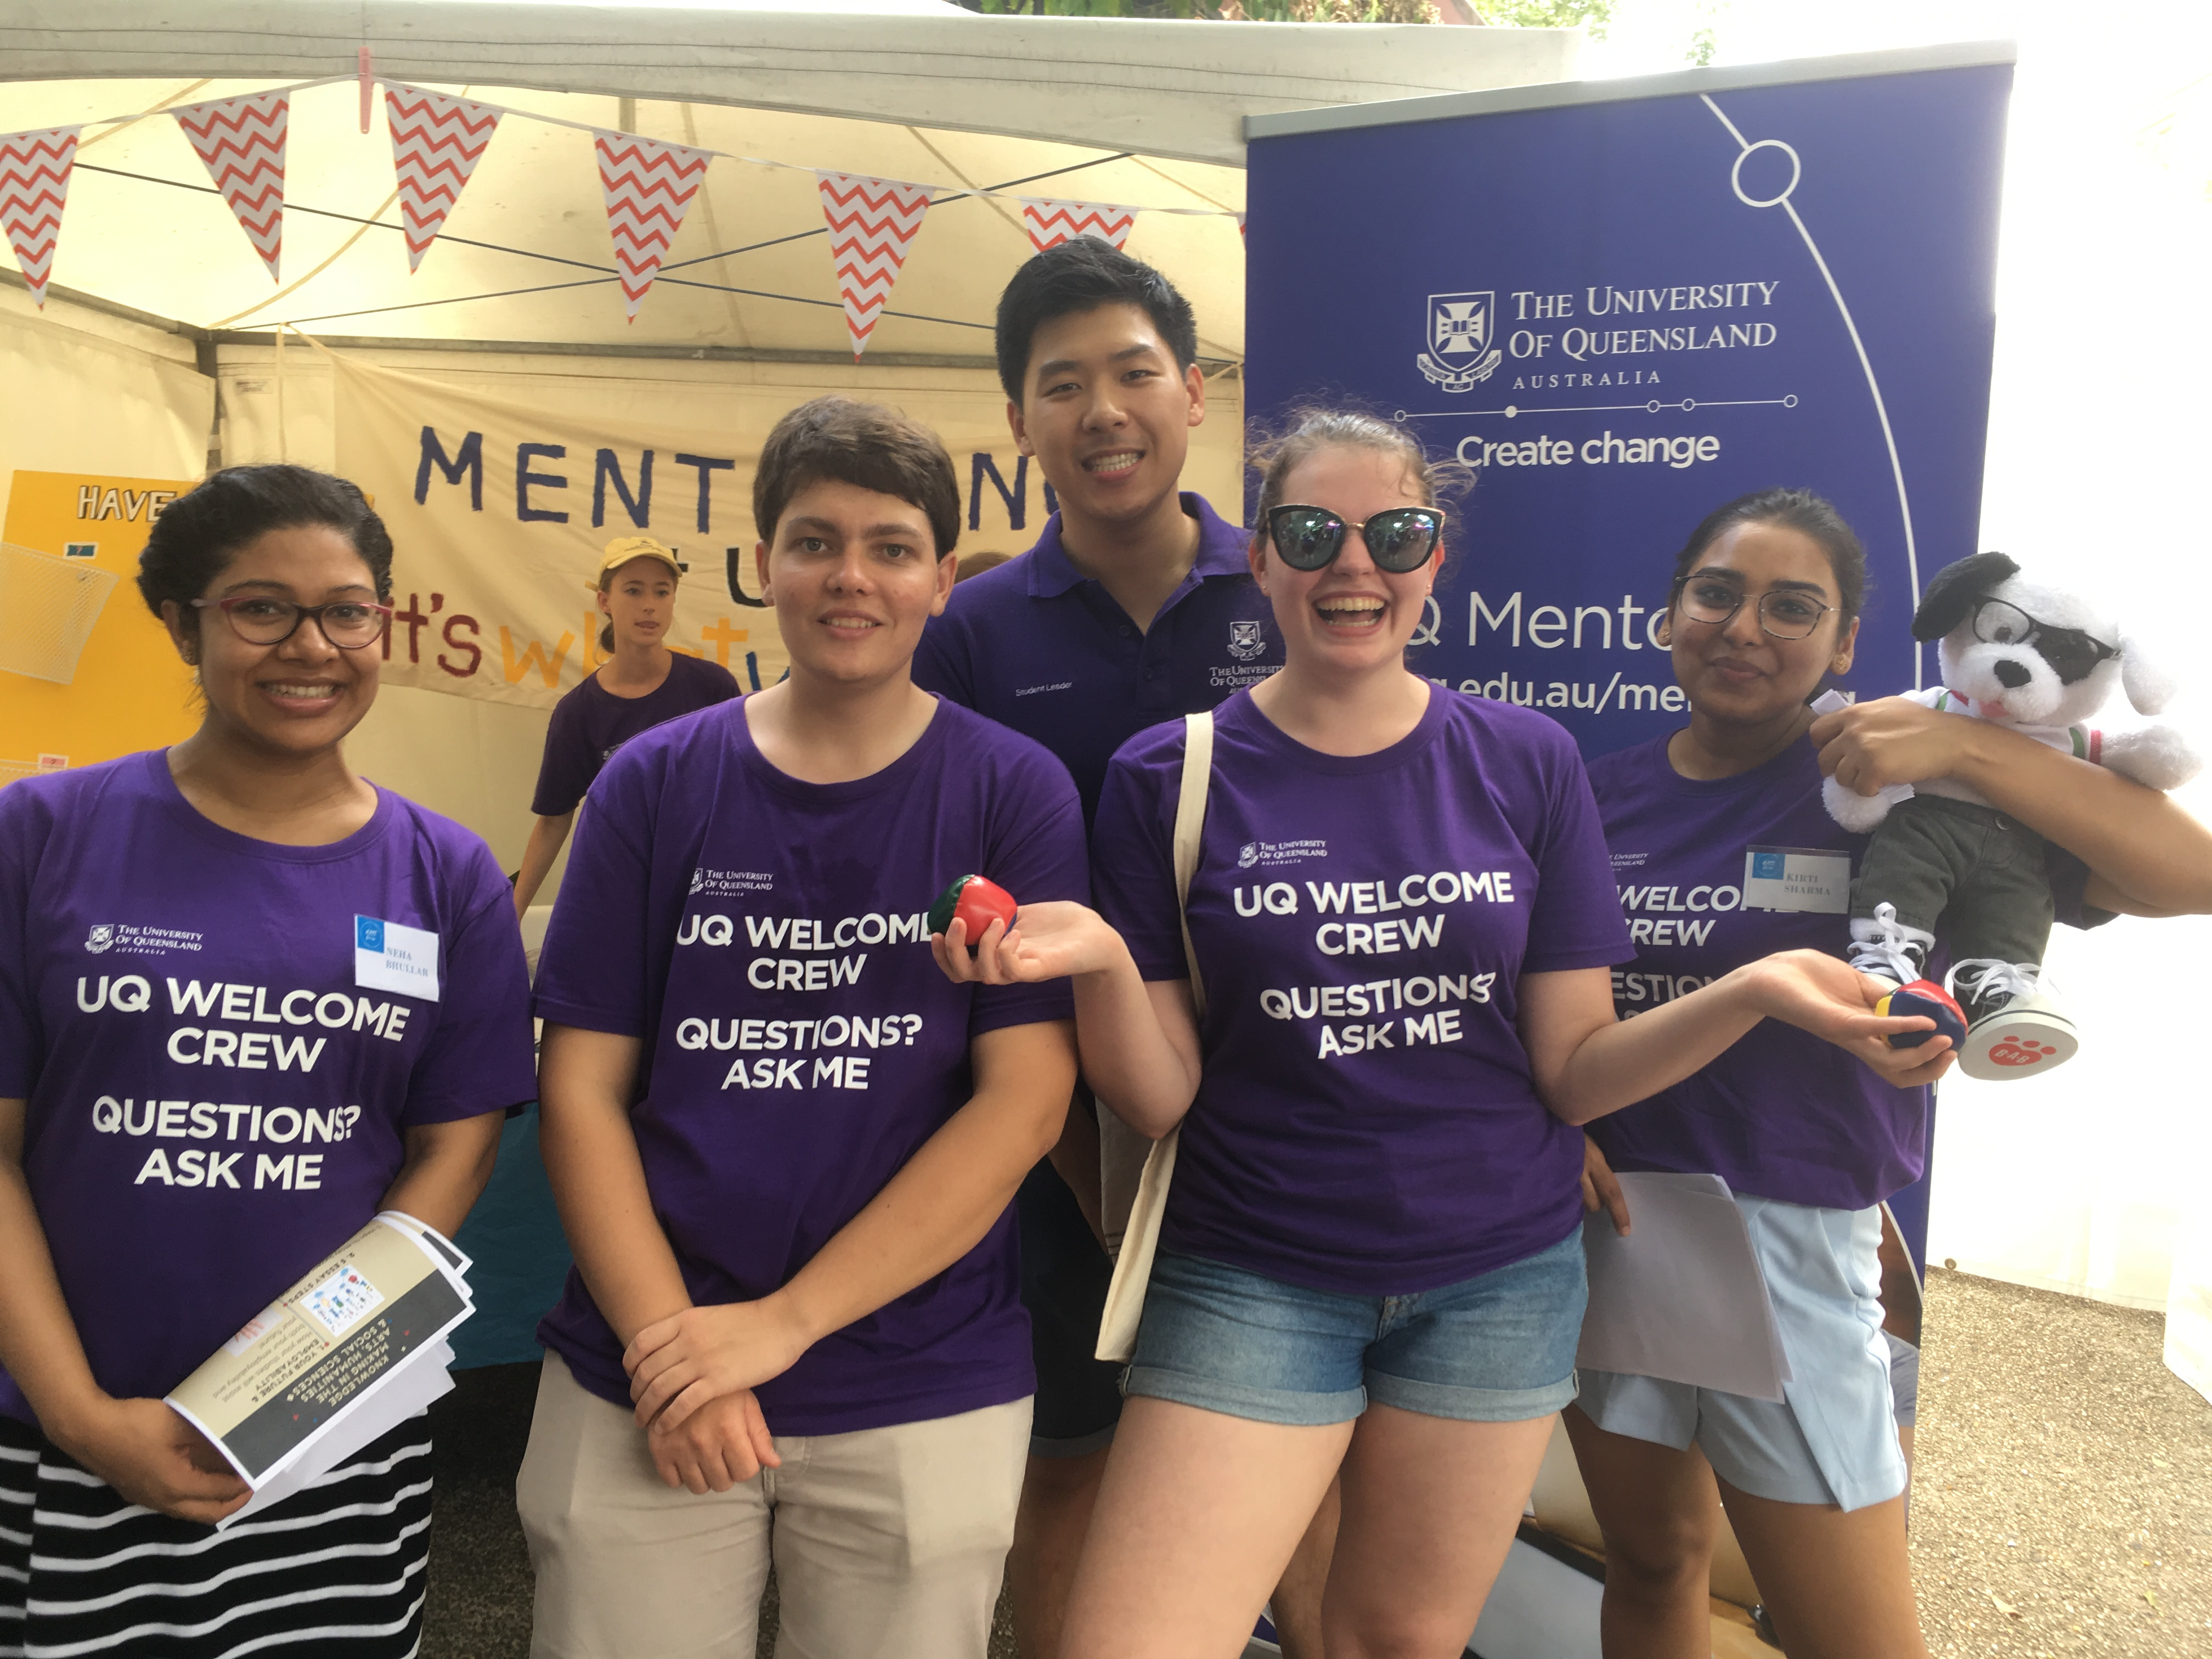 HASS volunteers at the Mentoring stall